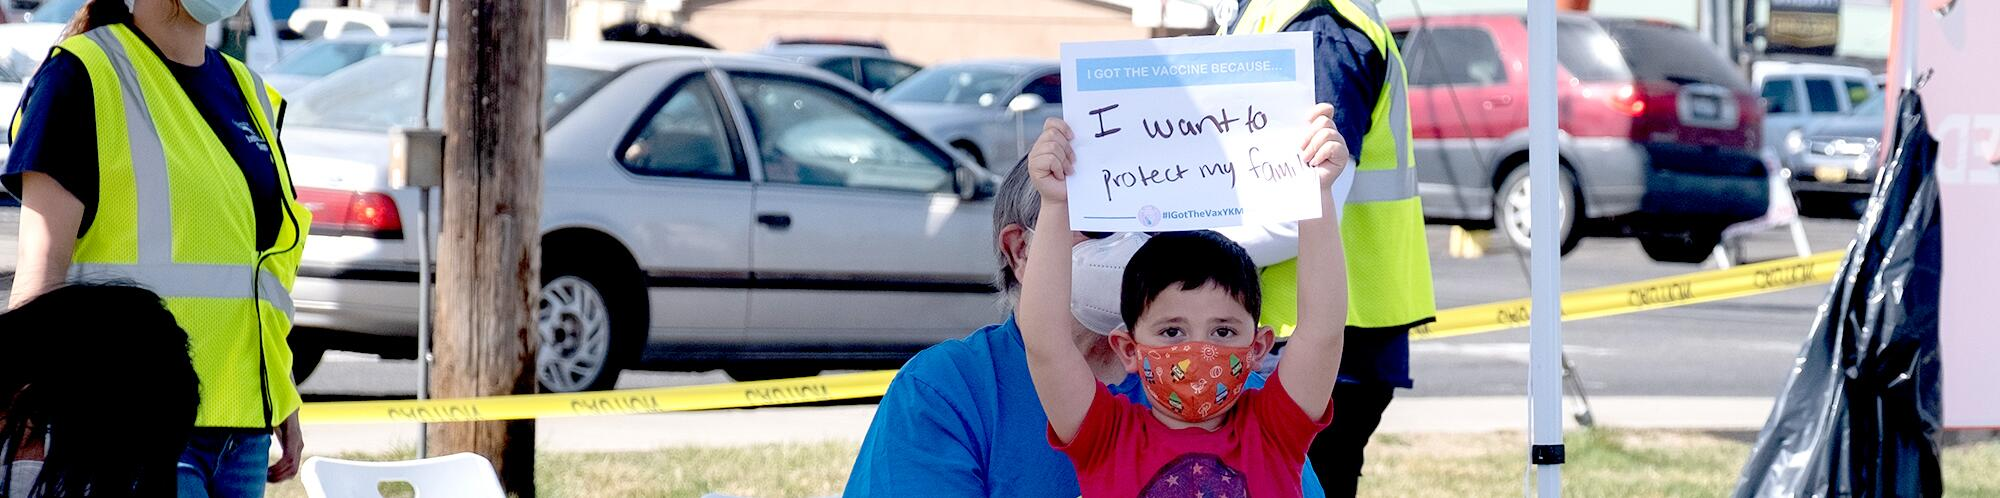 "A little boy holding a signing saying ""I want to protect my family"""